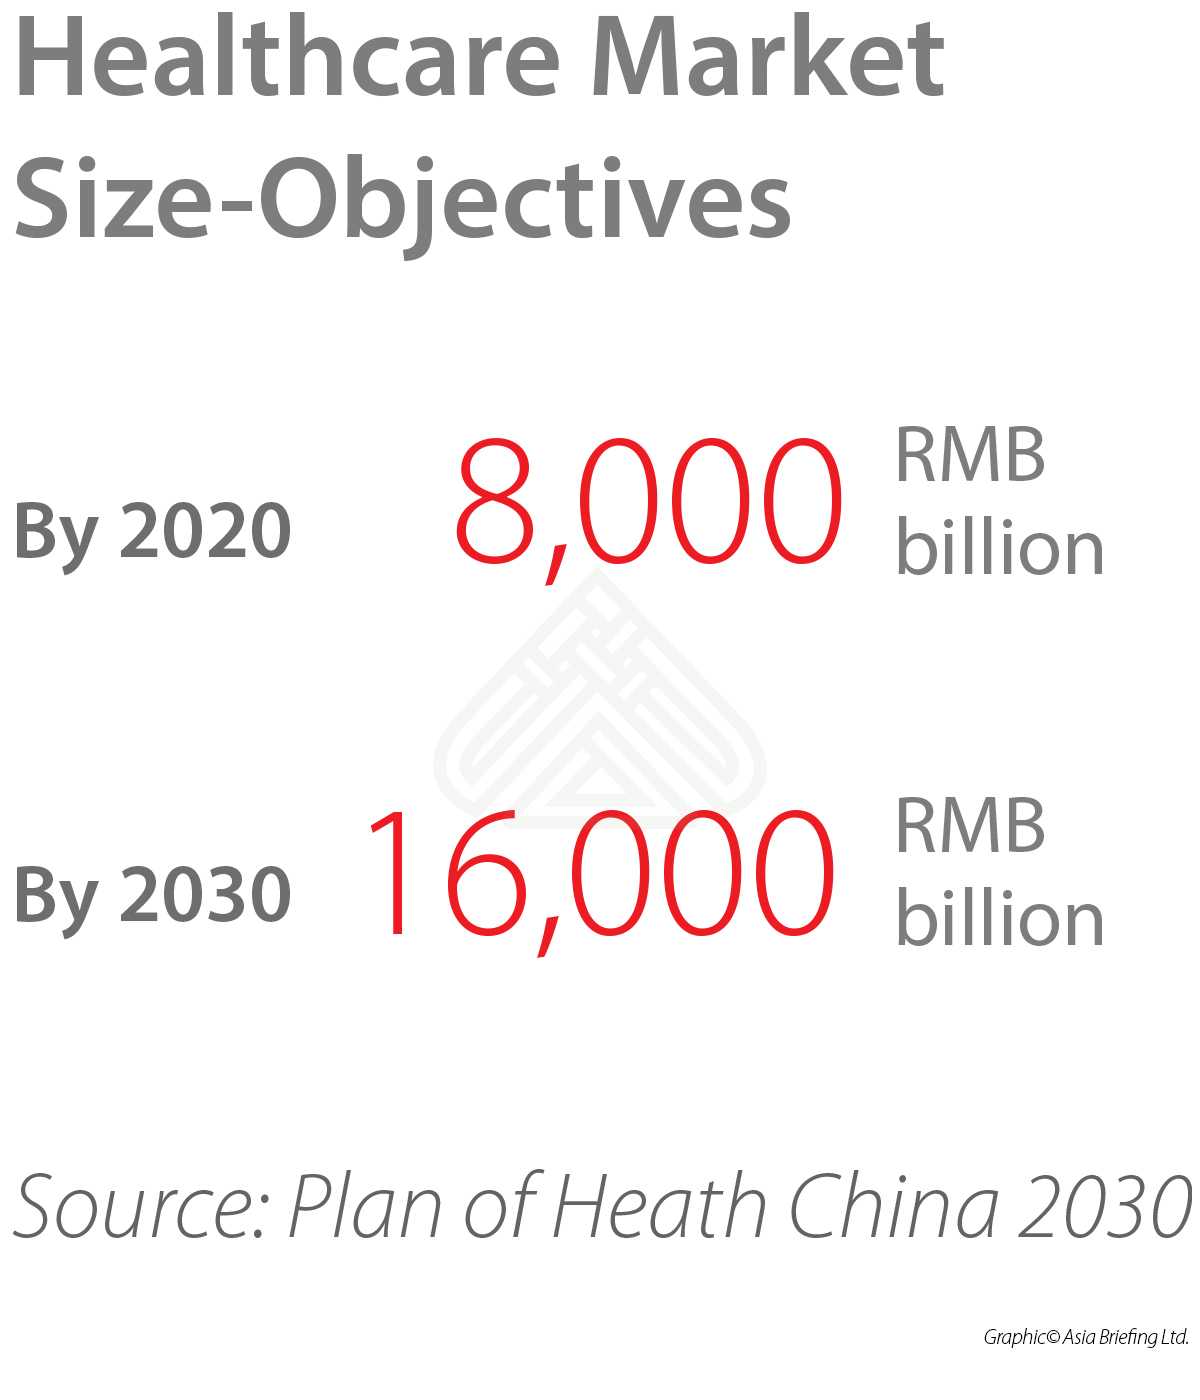 China's Healthcare Reforms Underscore Market Growth - China